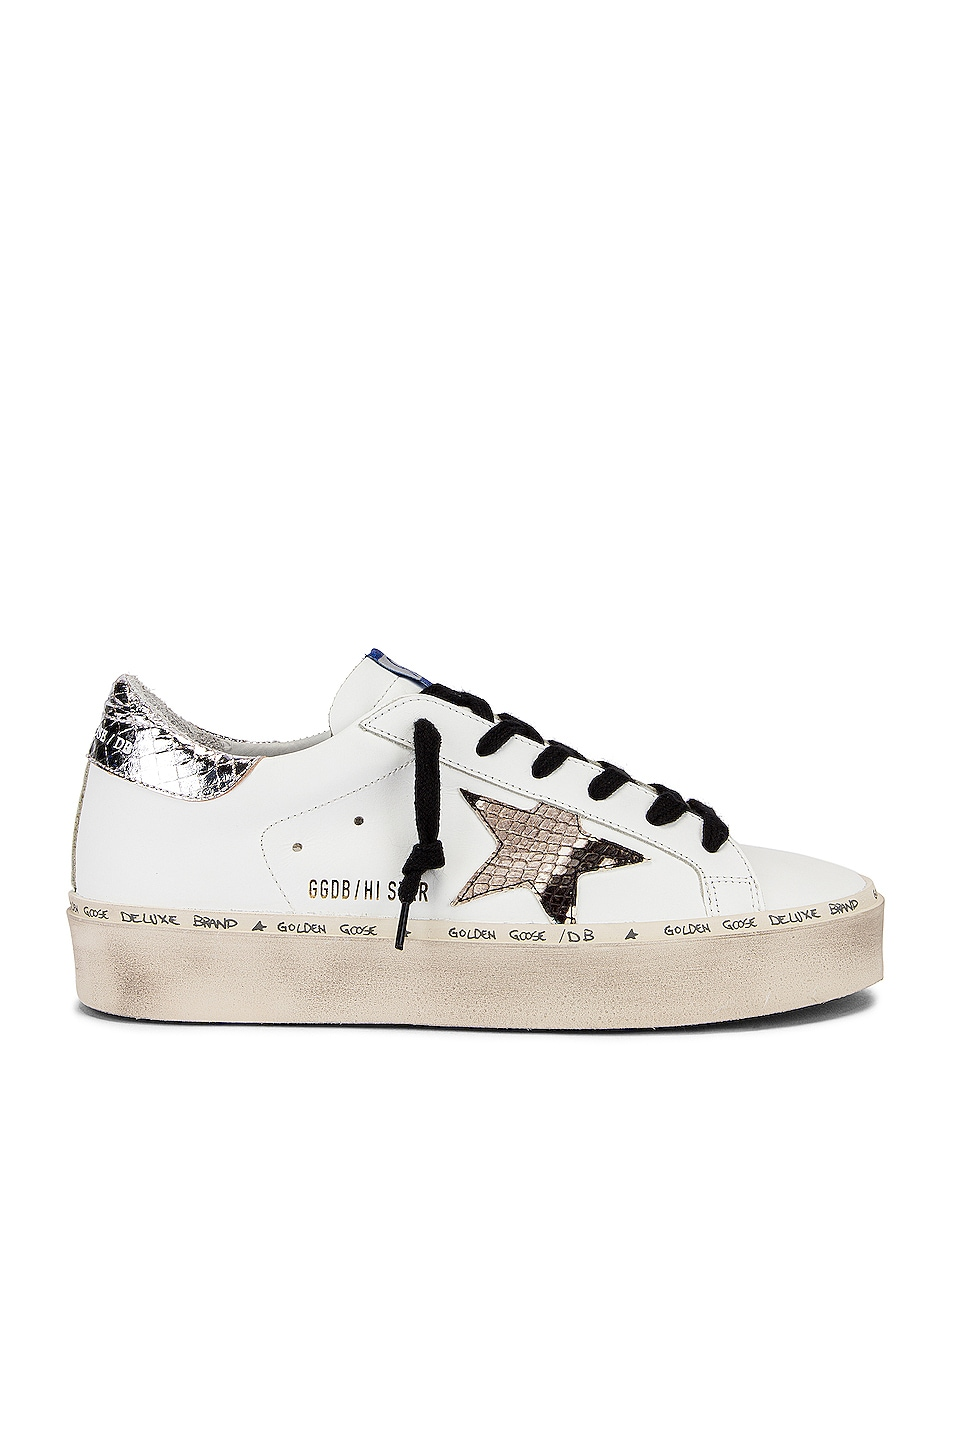 Image 1 of Golden Goose Hi Star Sneaker in White & Natural Snake